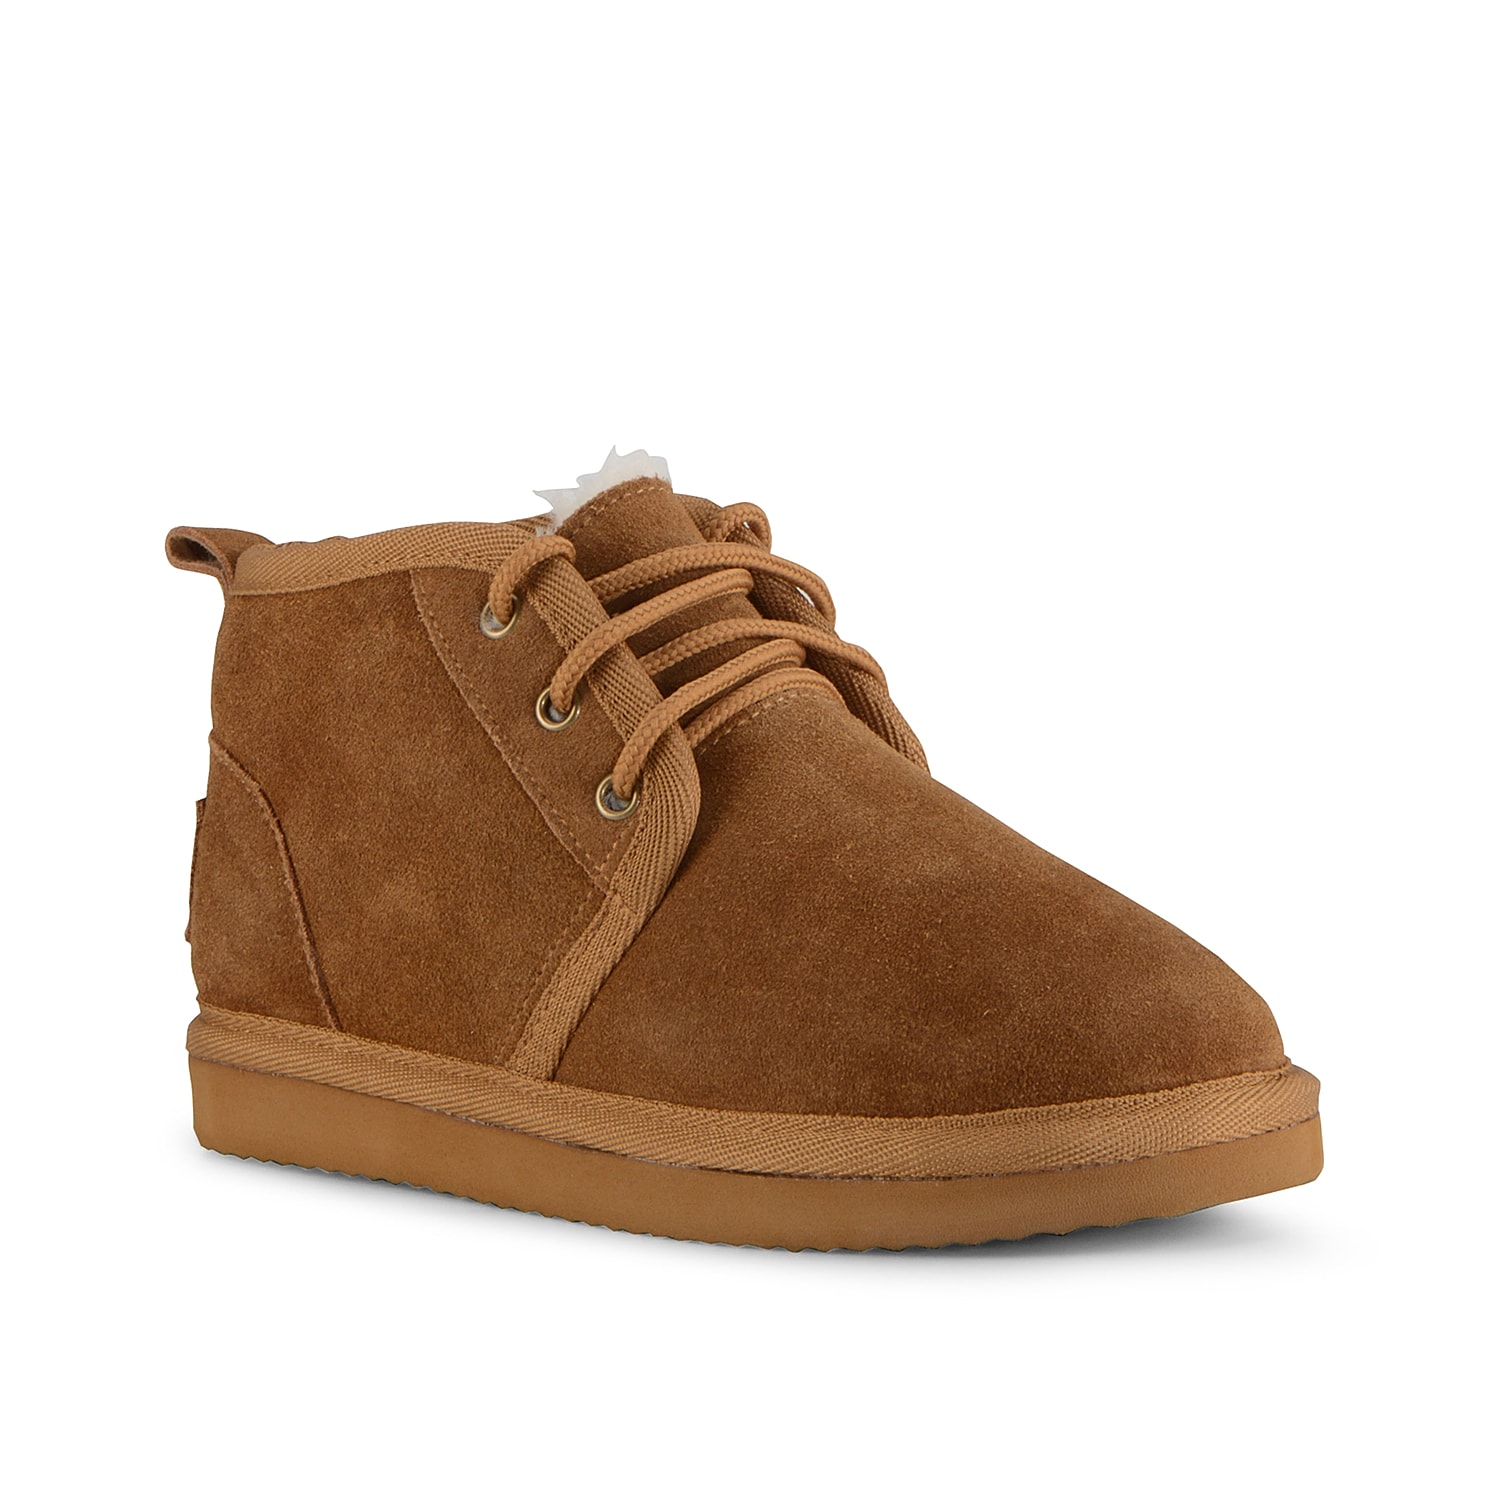 Bring a laid-back look to your shoe collection with the Sequoia chukka boot from Lugz. This lace-up pair is fashioned with a soft suede upper and a faux shearling lining for cozy comfort! Click here for Boot Measuring Guide.